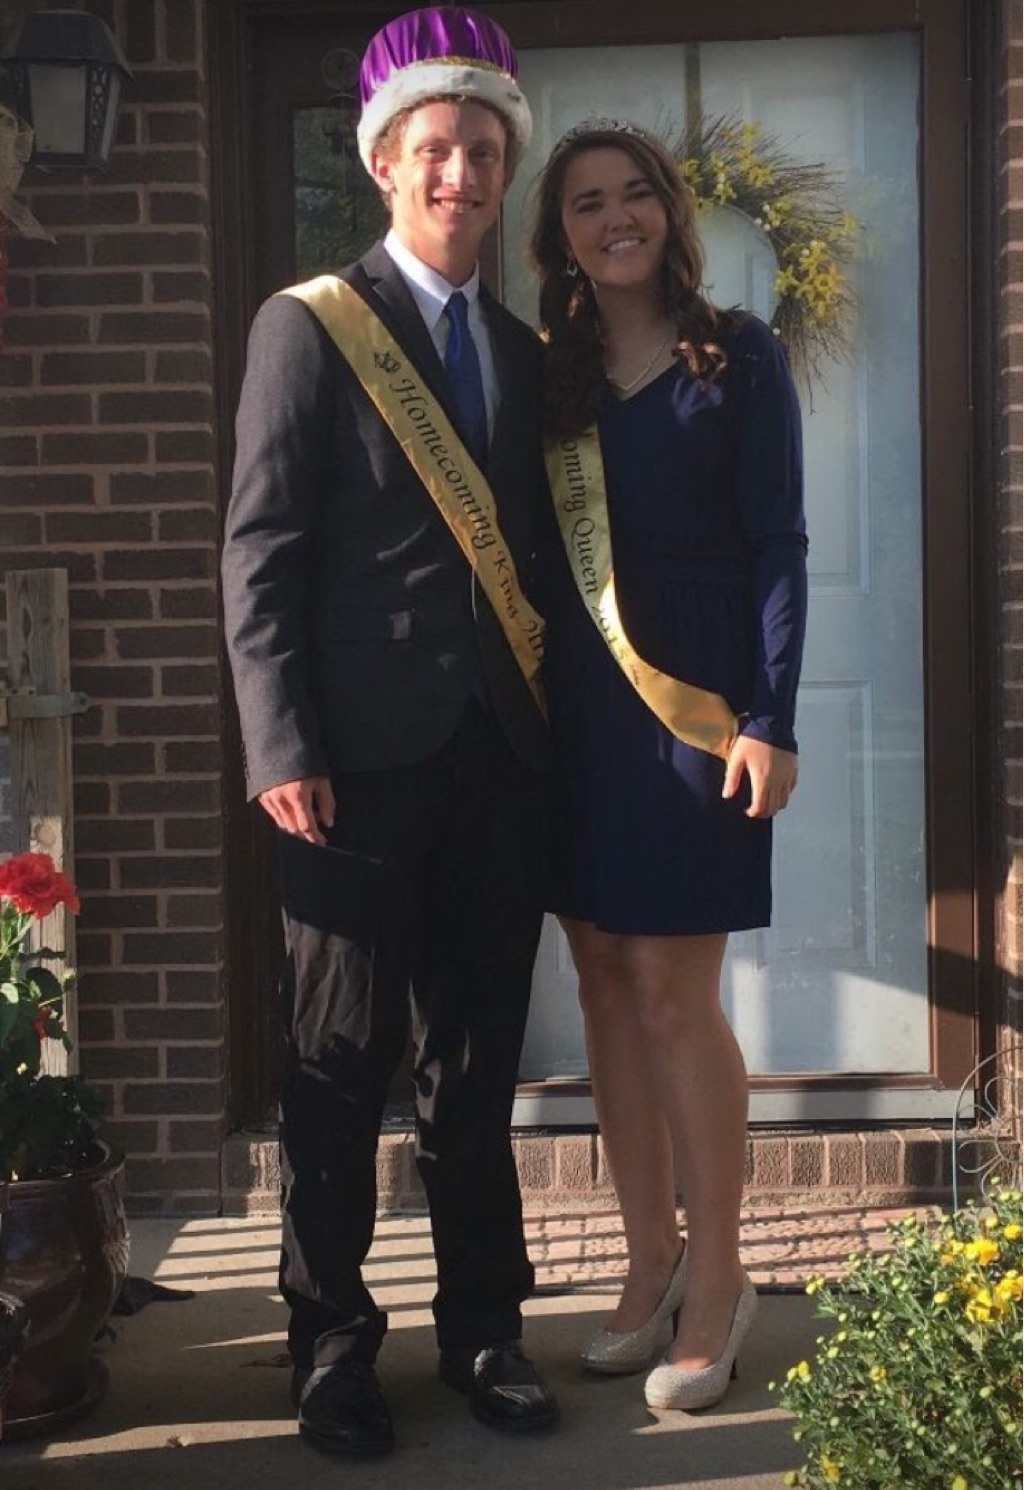 Homecoming Picture with Boyfriend while attending community college